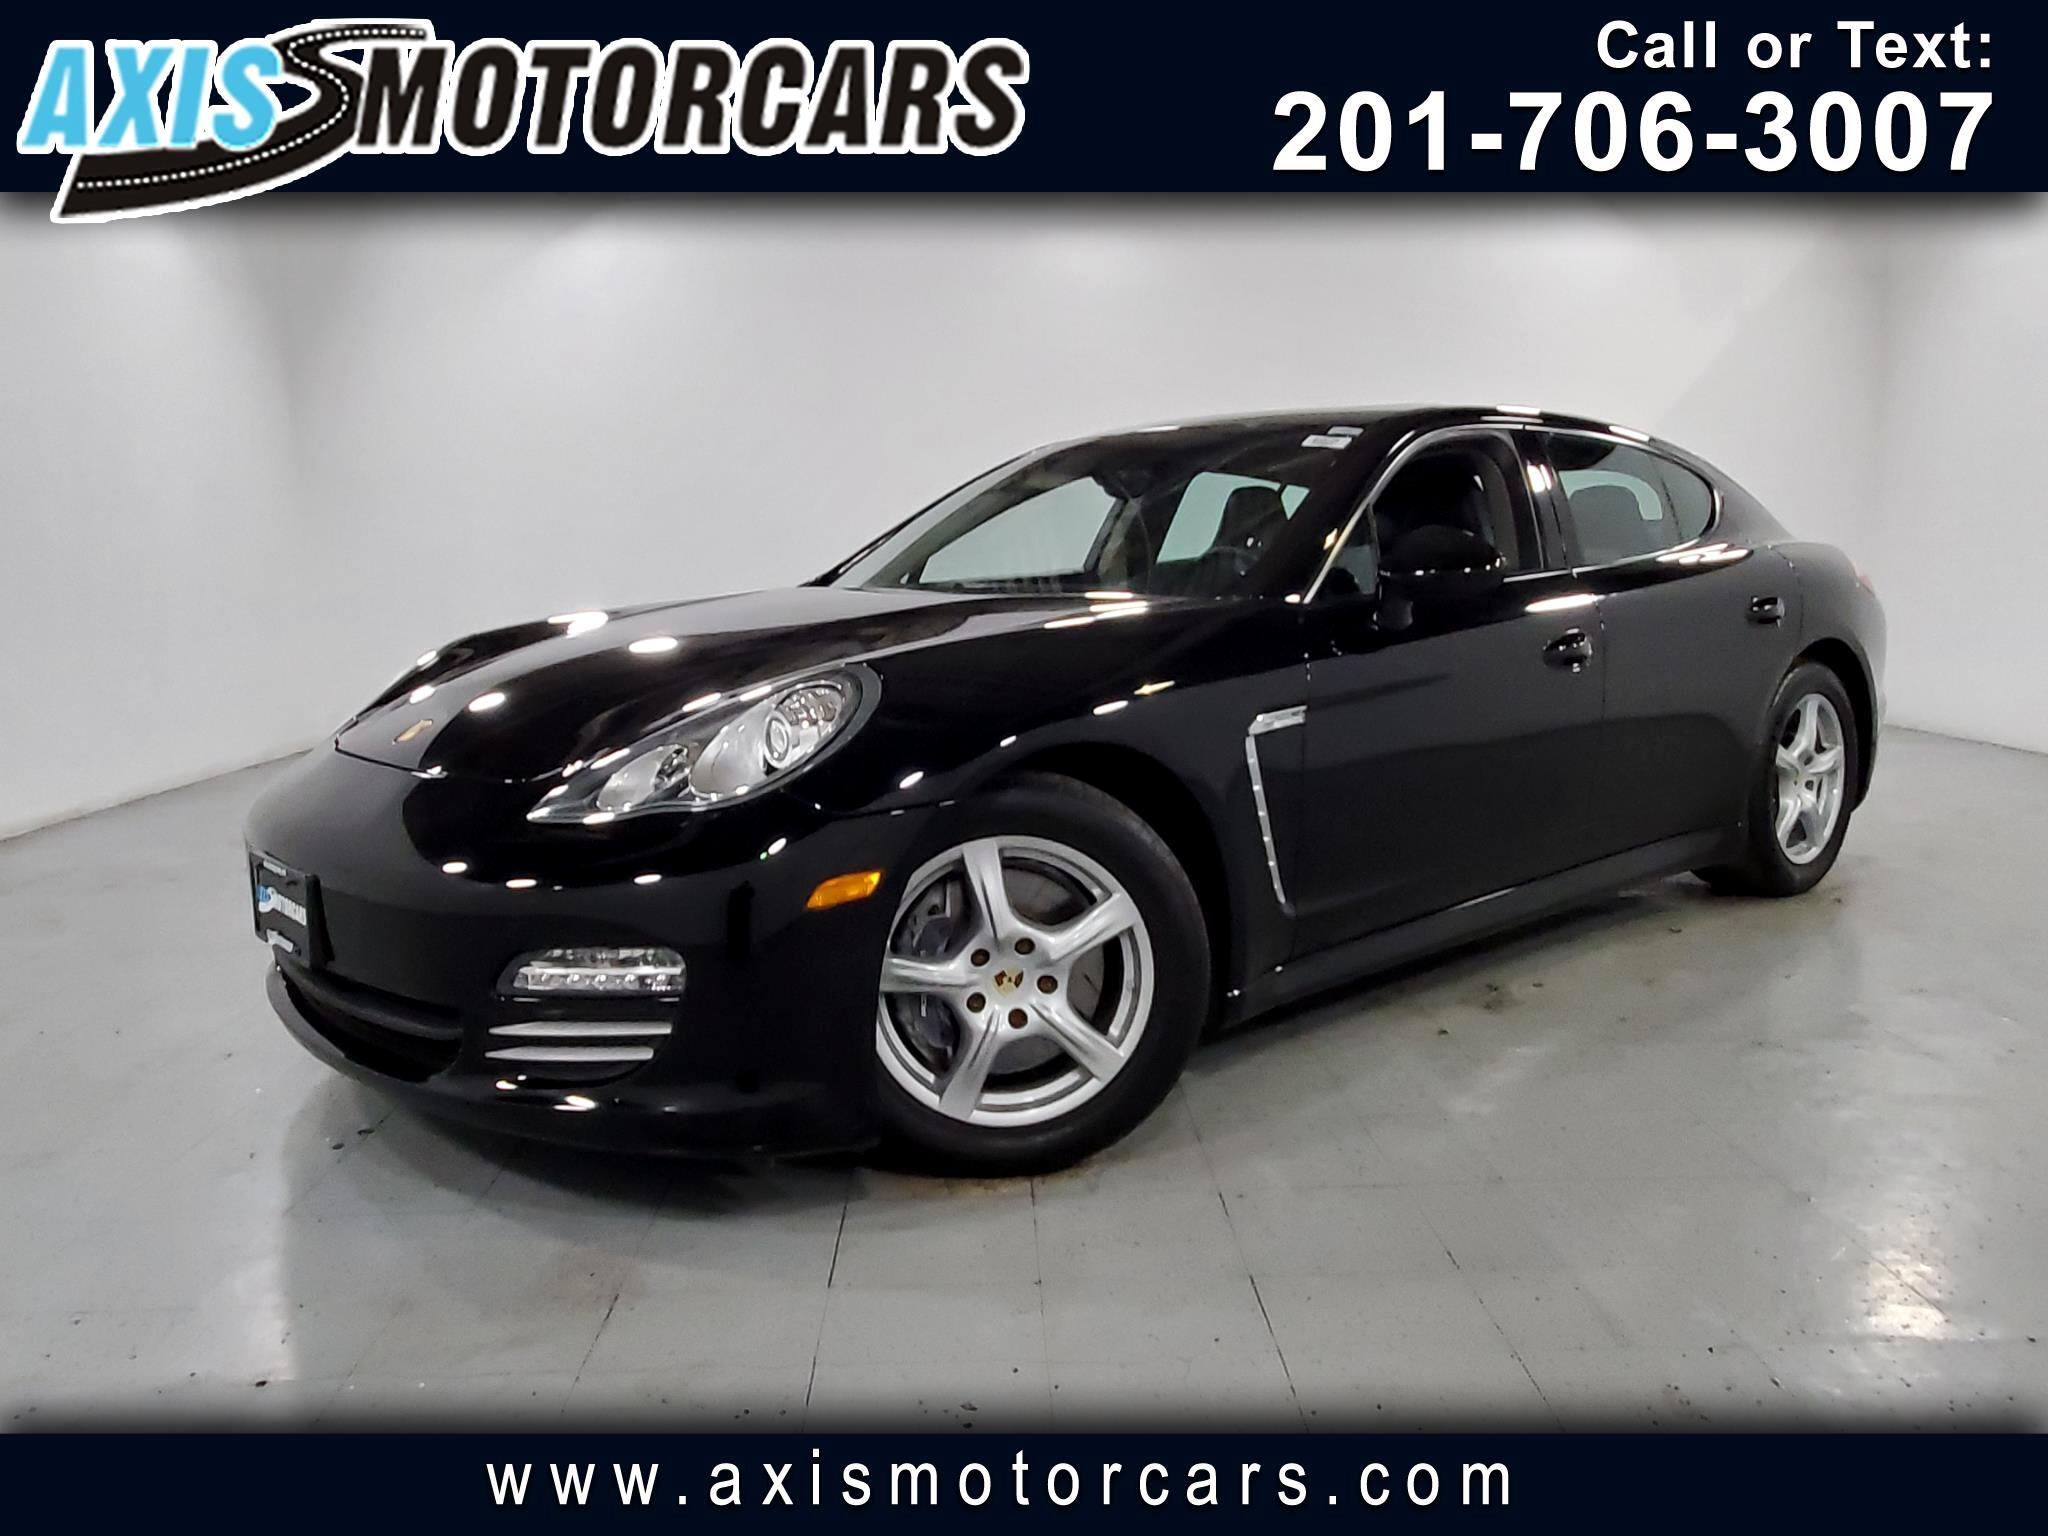 2011 Porsche Panamera w/Bose Sound Navigation Backup Camera